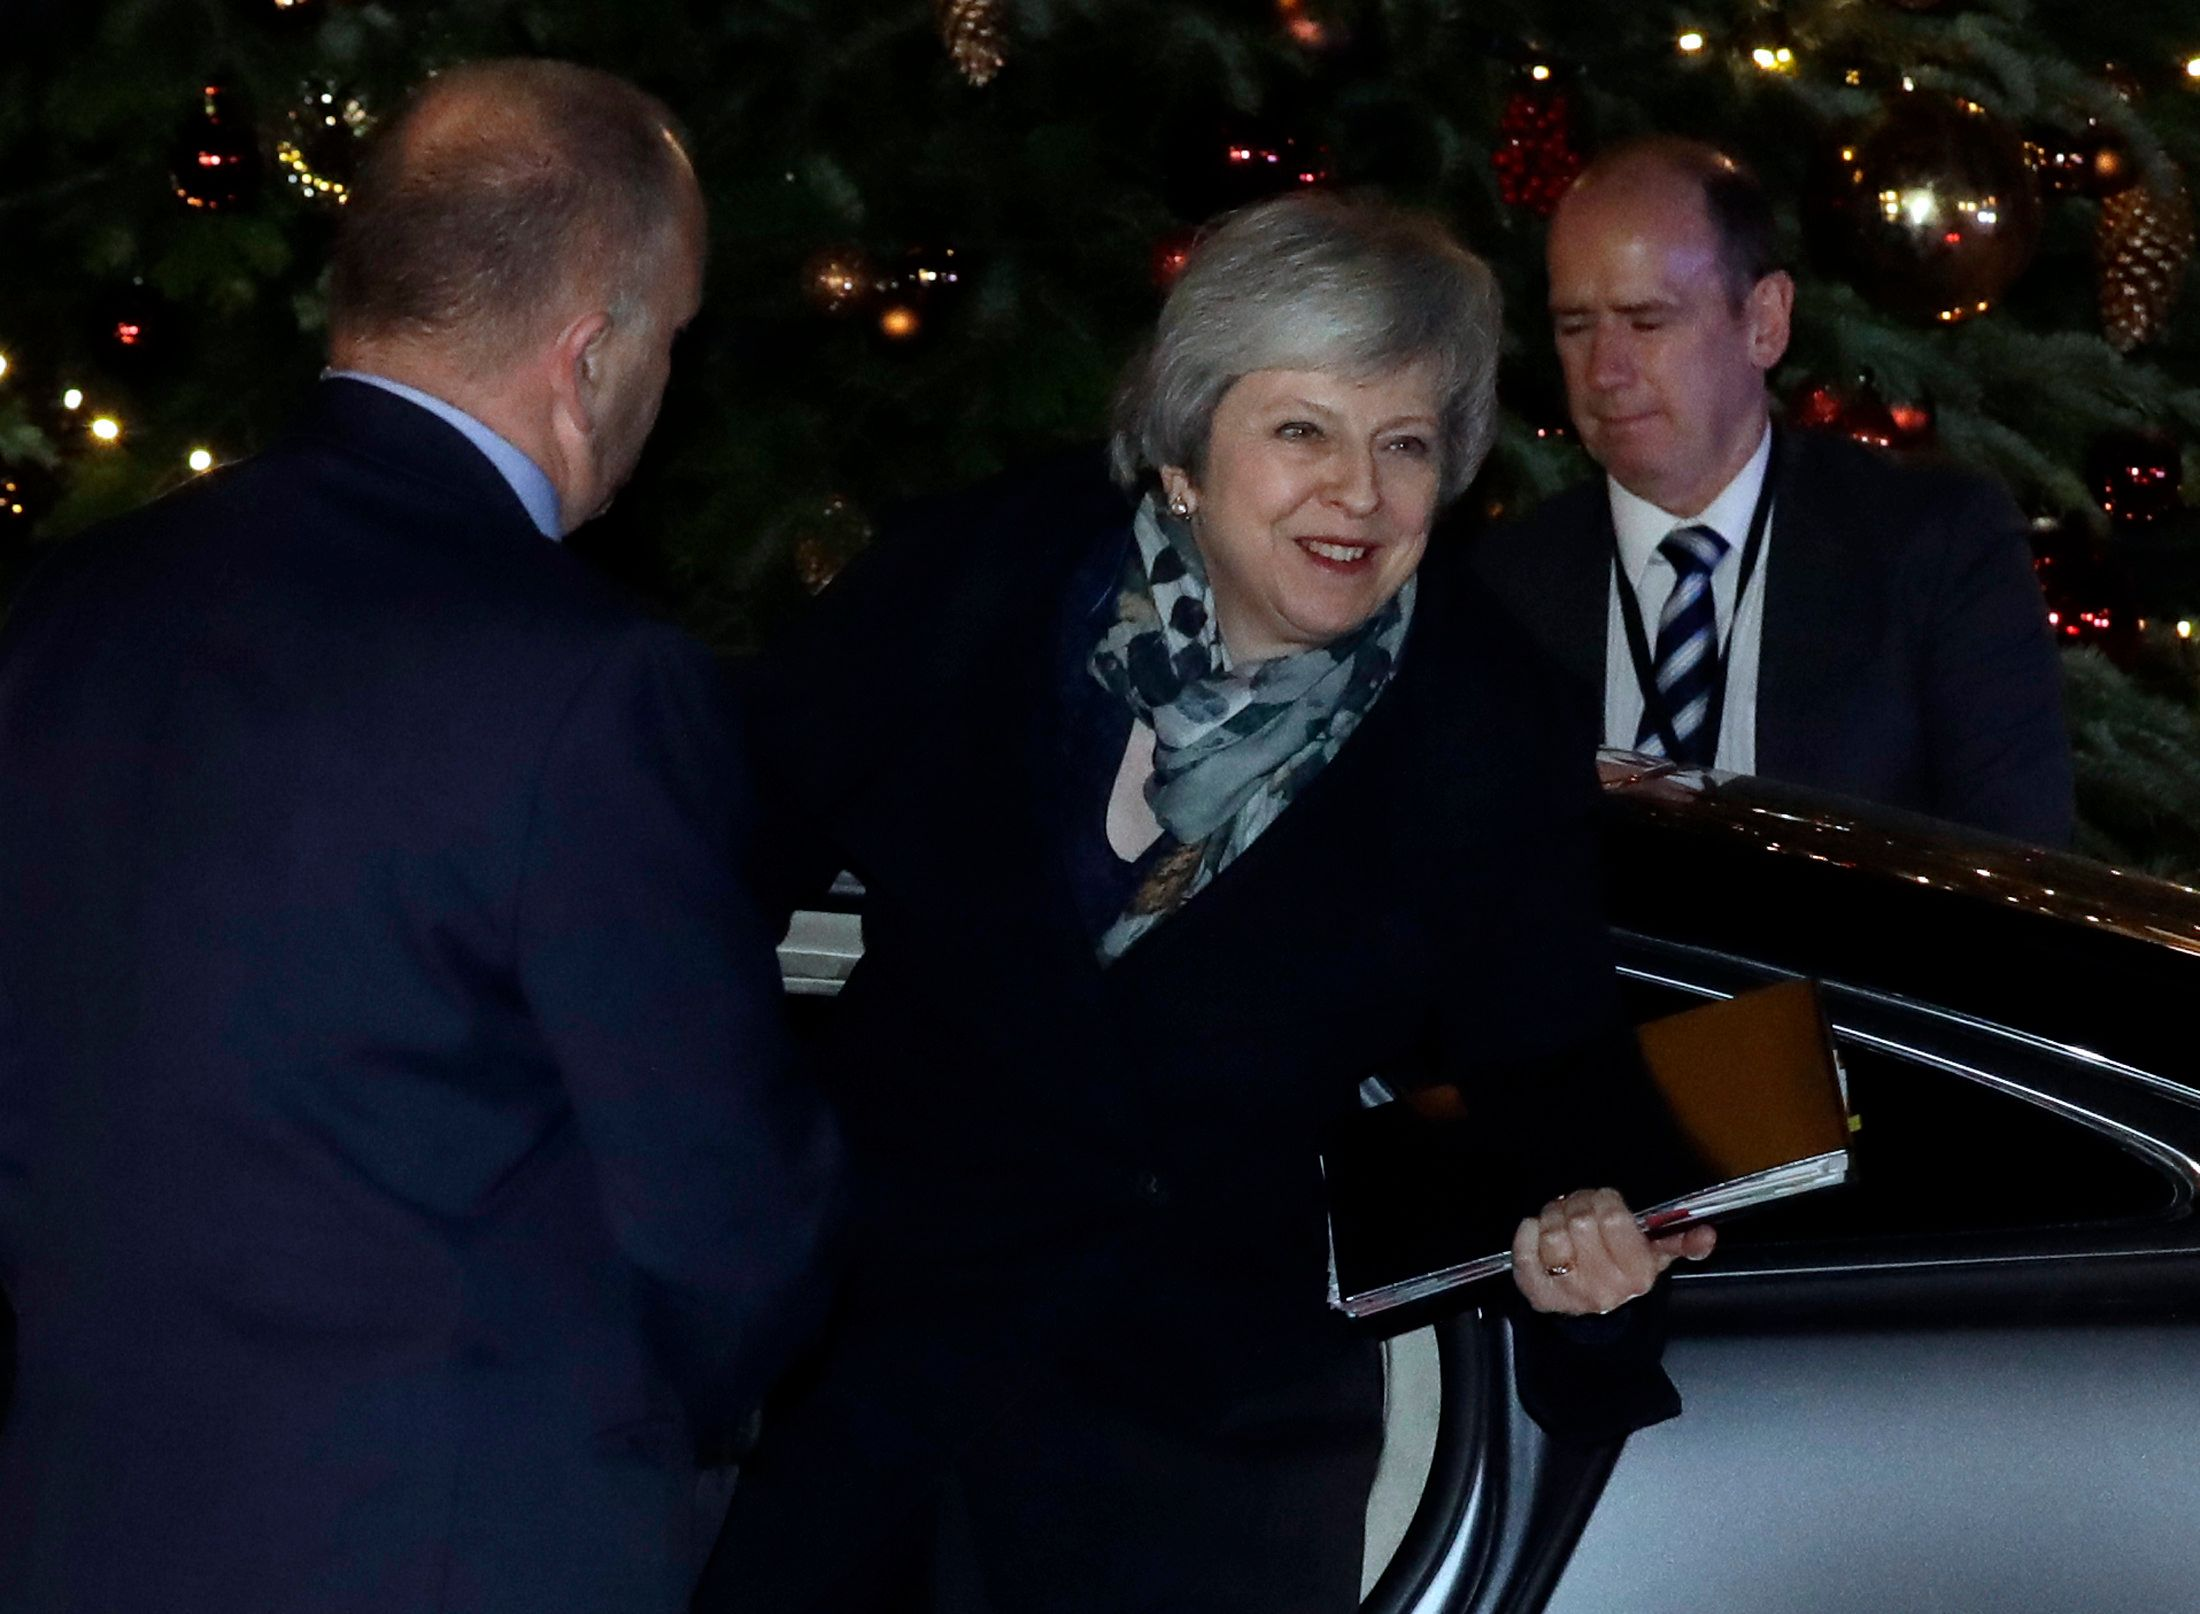 Theresa May Survives, But What Do The Latest Tory Shenanigans Mean For